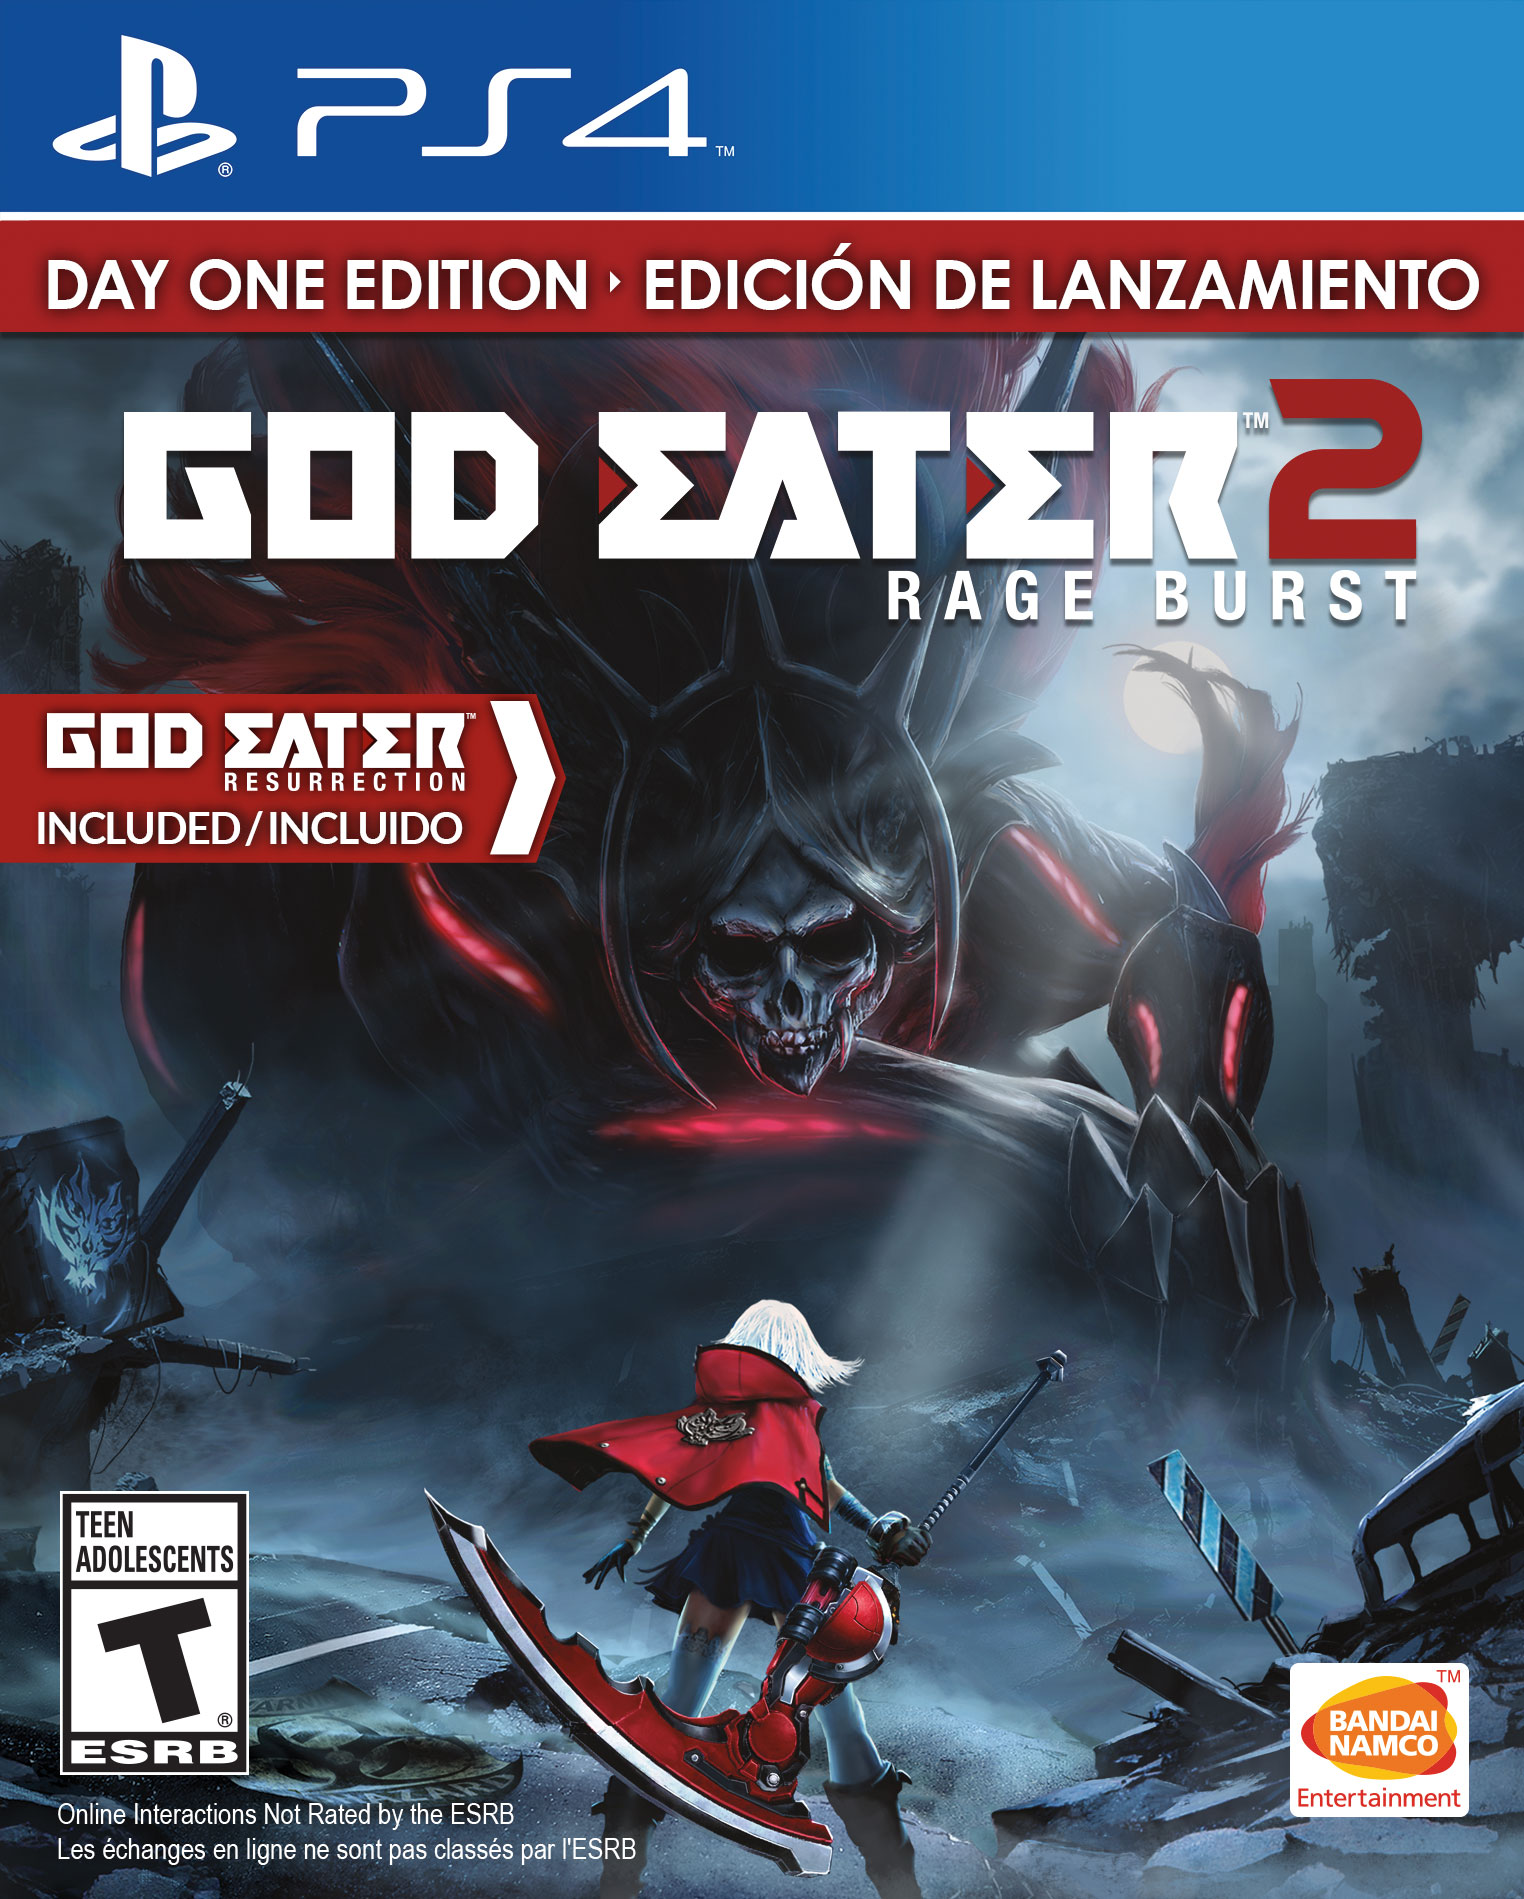 God Eater 2 Day One